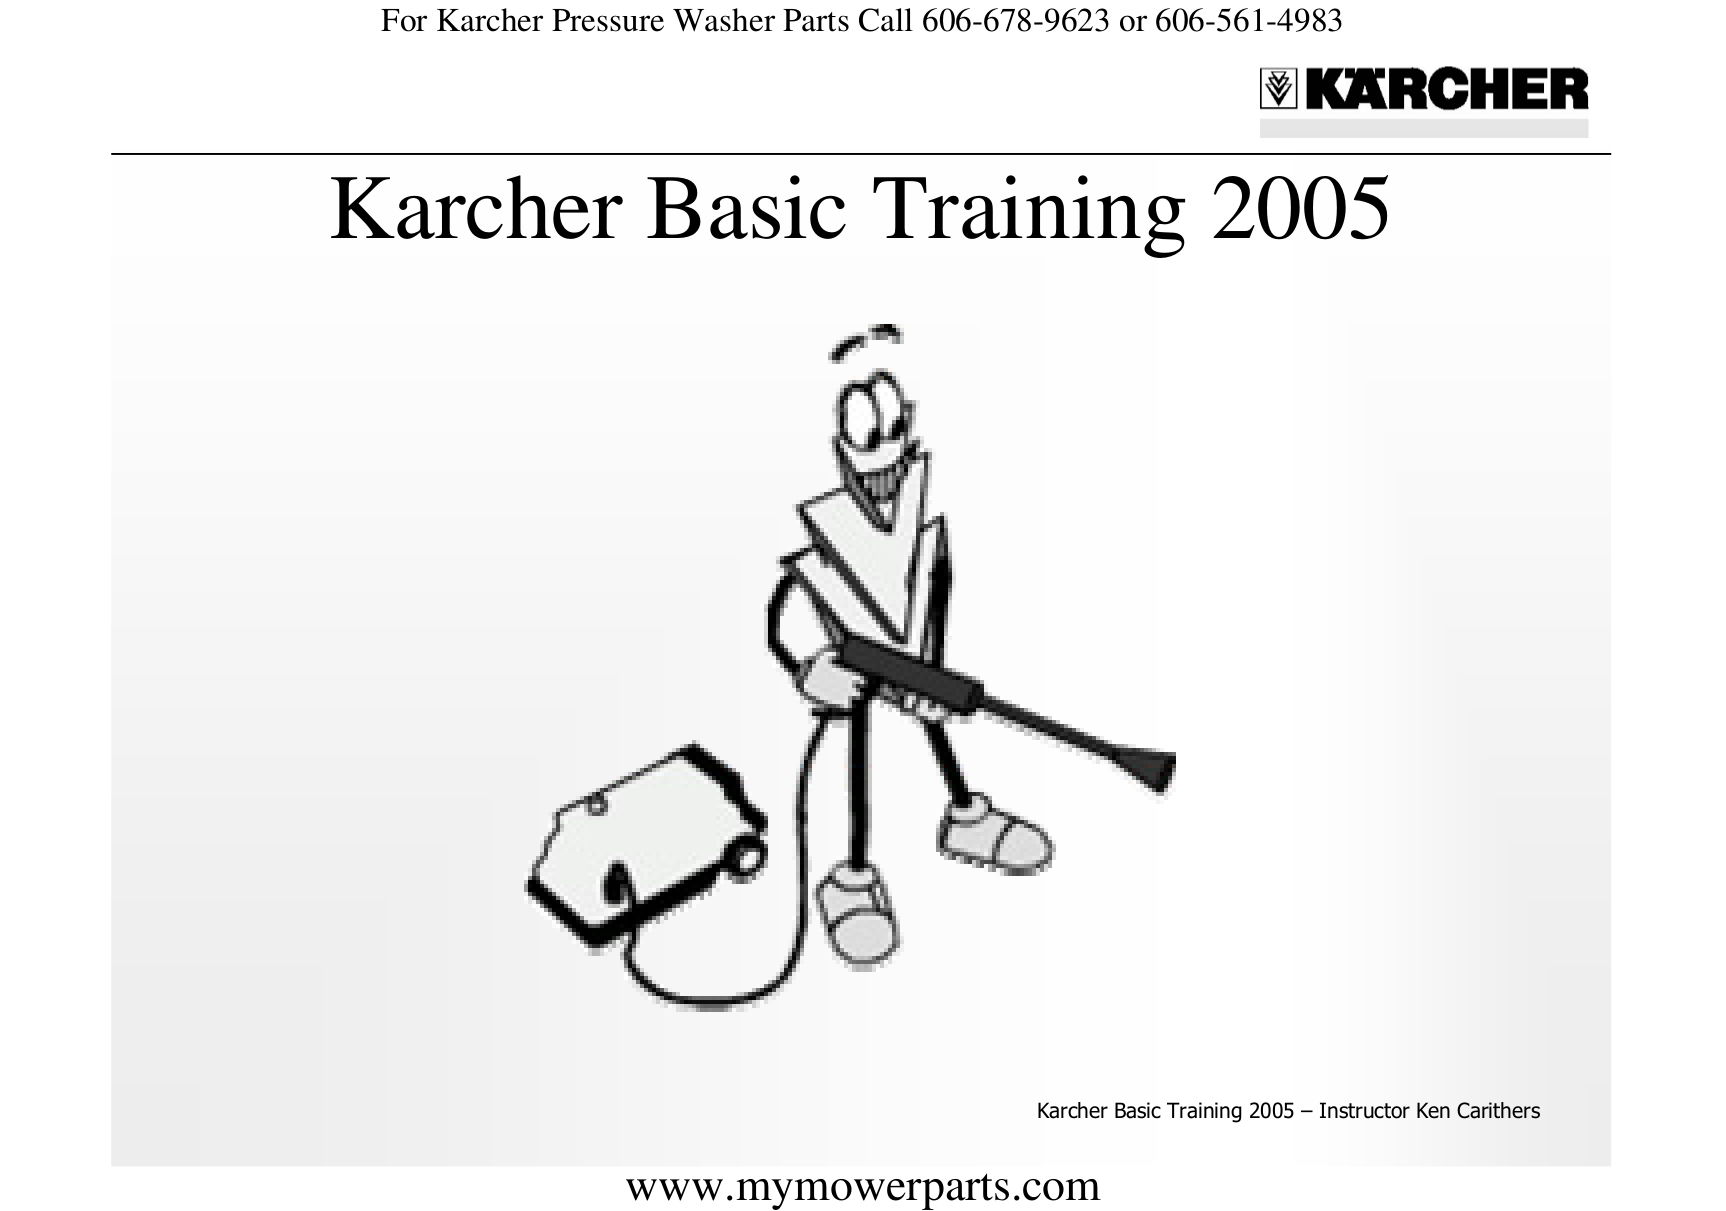 Karcher Pressure Washer Basic Troubleshooting Training 2005.pdf 0 download free pdf for karcher k 5000 g pressure washers other manual karcher pressure washer wiring diagrams at panicattacktreatment.co